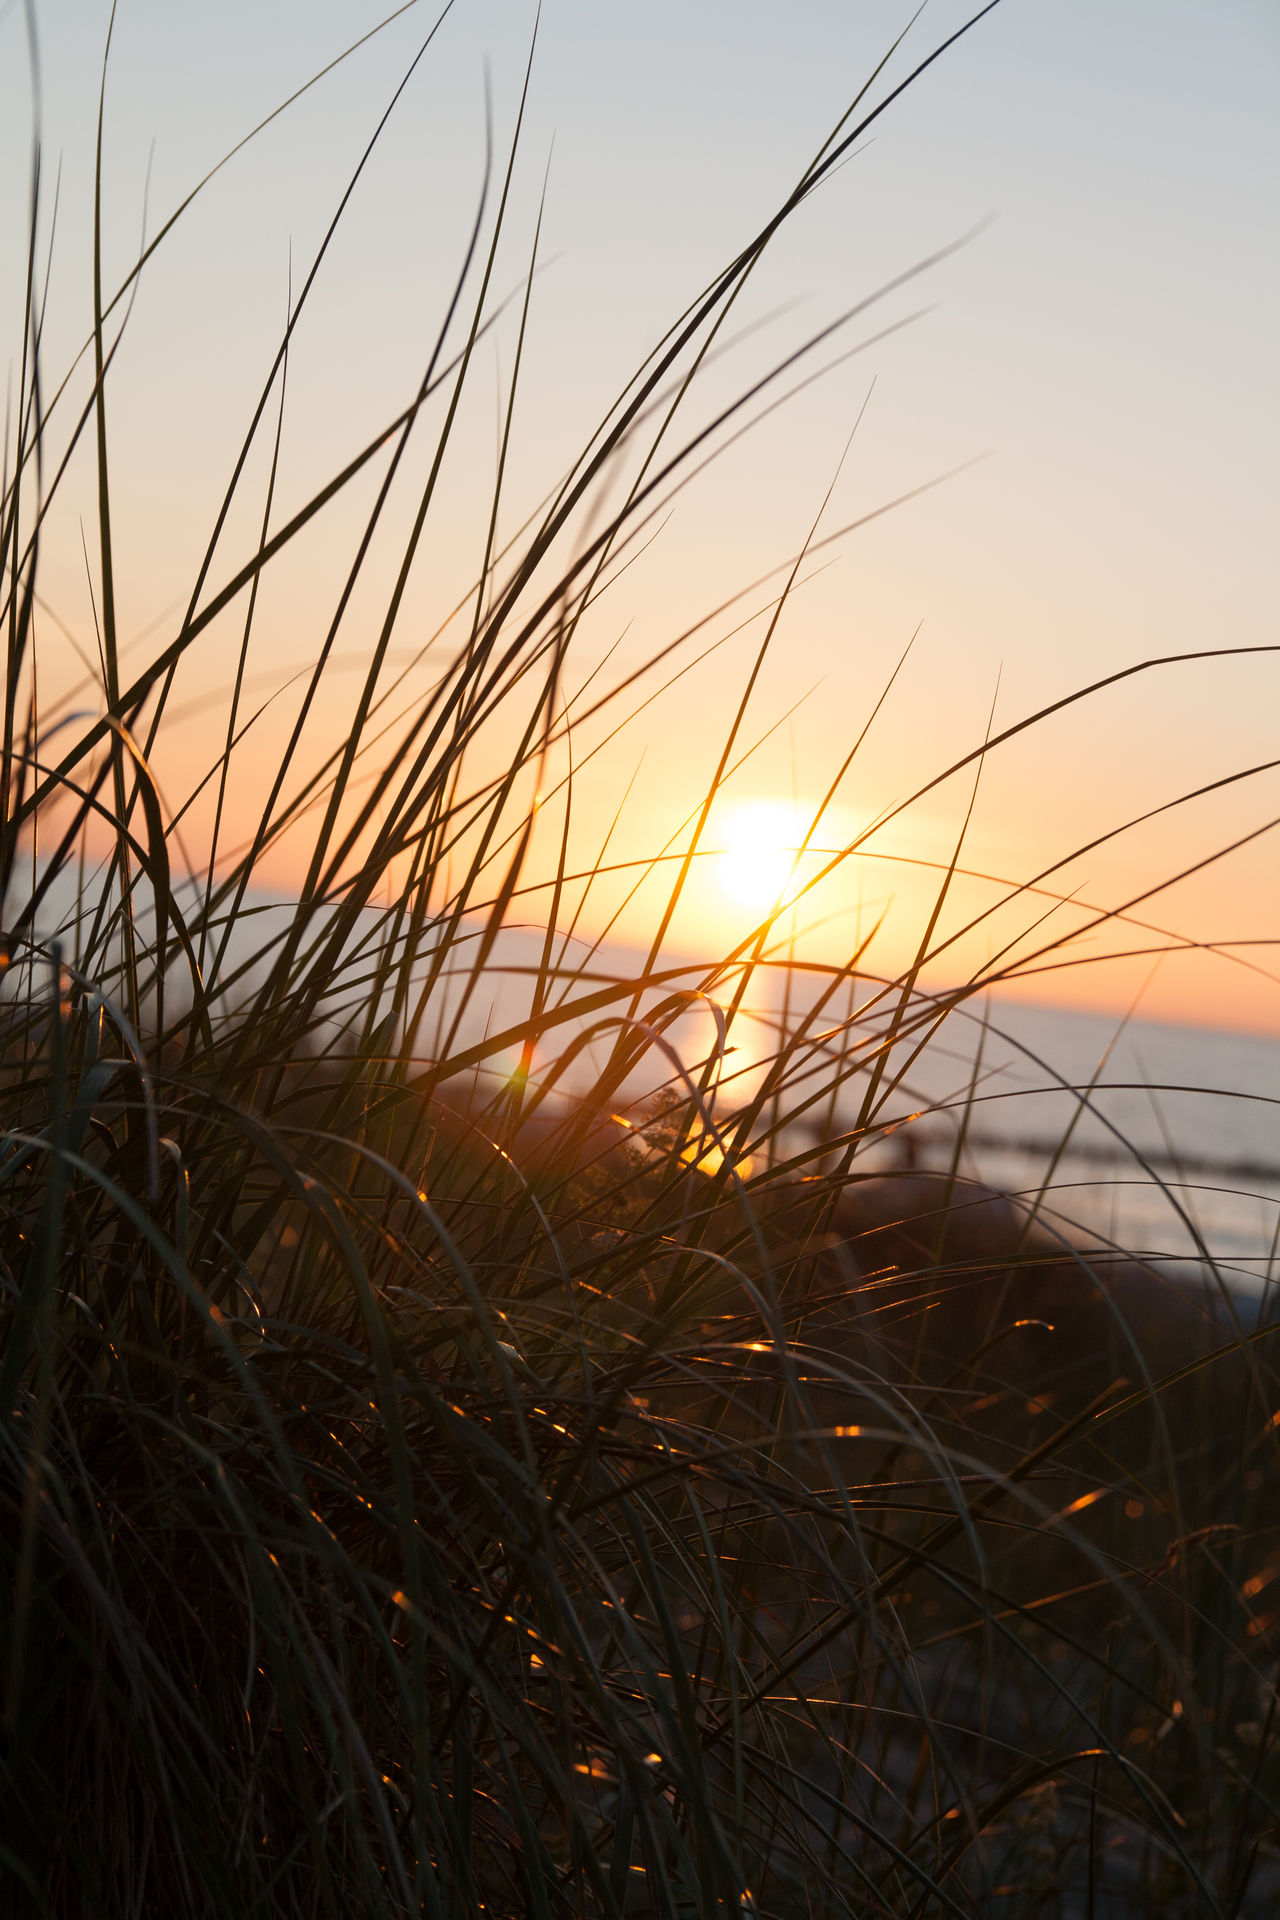 Sunset Baltic Sea Beauty In Nature Close-up Day Field Grass Growth Landscape Nature No People Ostsee Outdoors Plant Rural Scene Scenics Sea Sky Sun Sunlight Sunset Tranquil Scene Tranquility Water